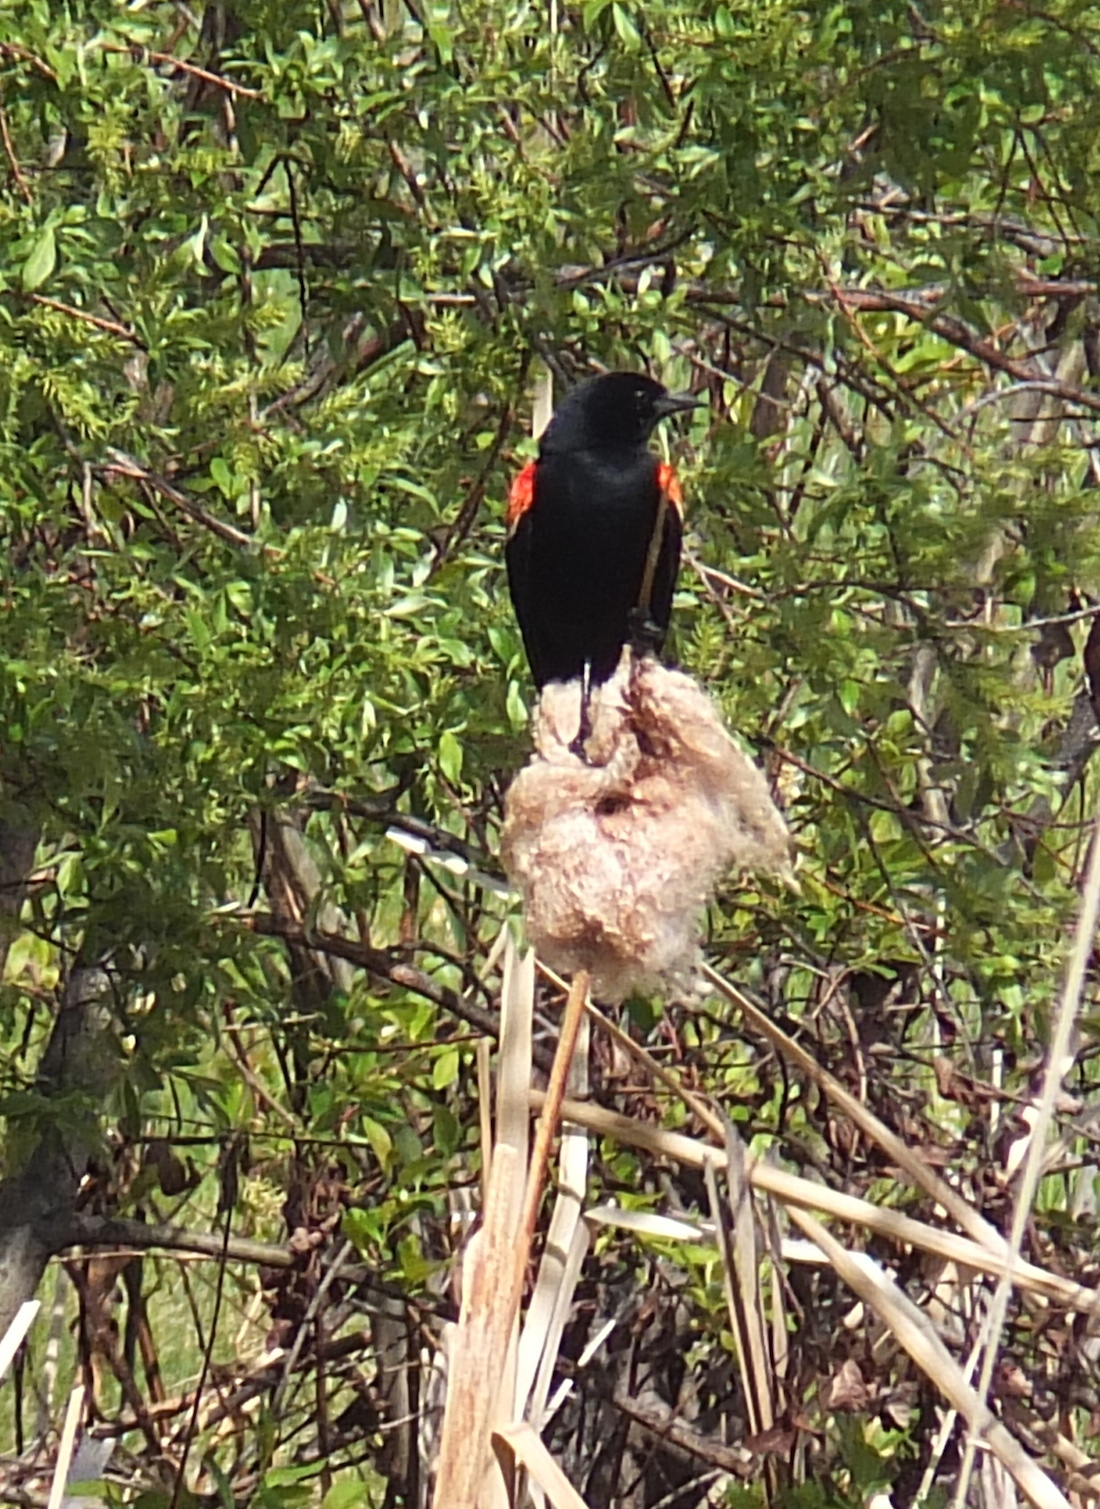 ...also known as the Redwing Blackbird pond...